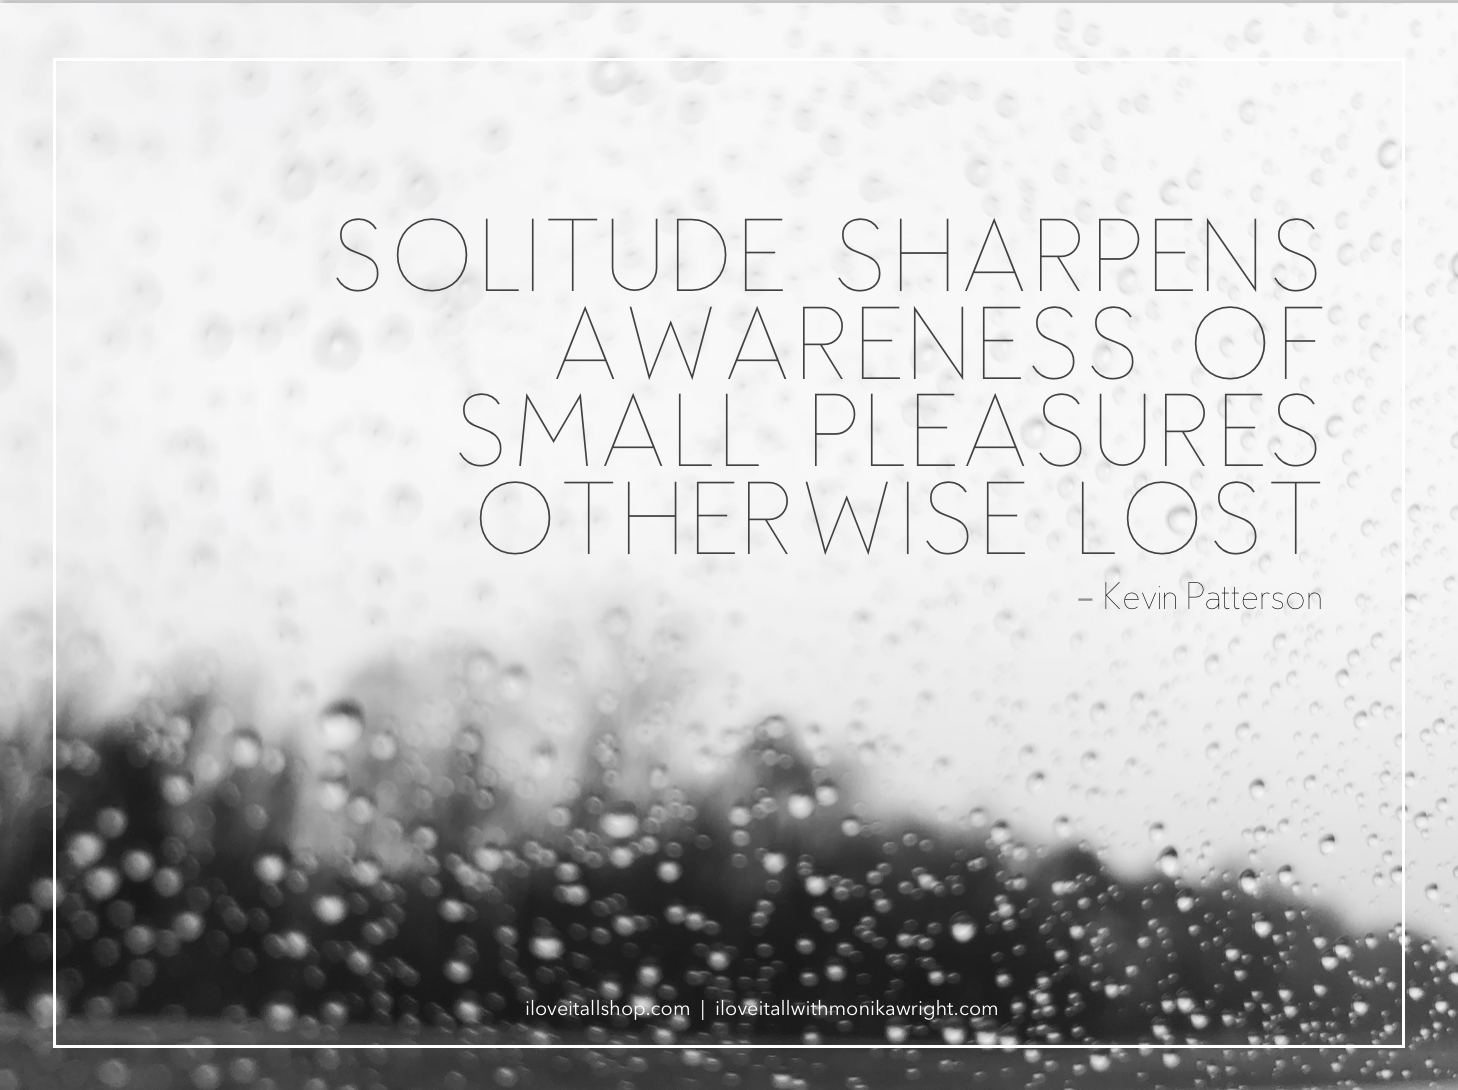 #rain #raindrops #solitude #Sunday Photos #motivational #inspirational #quote #quotes #